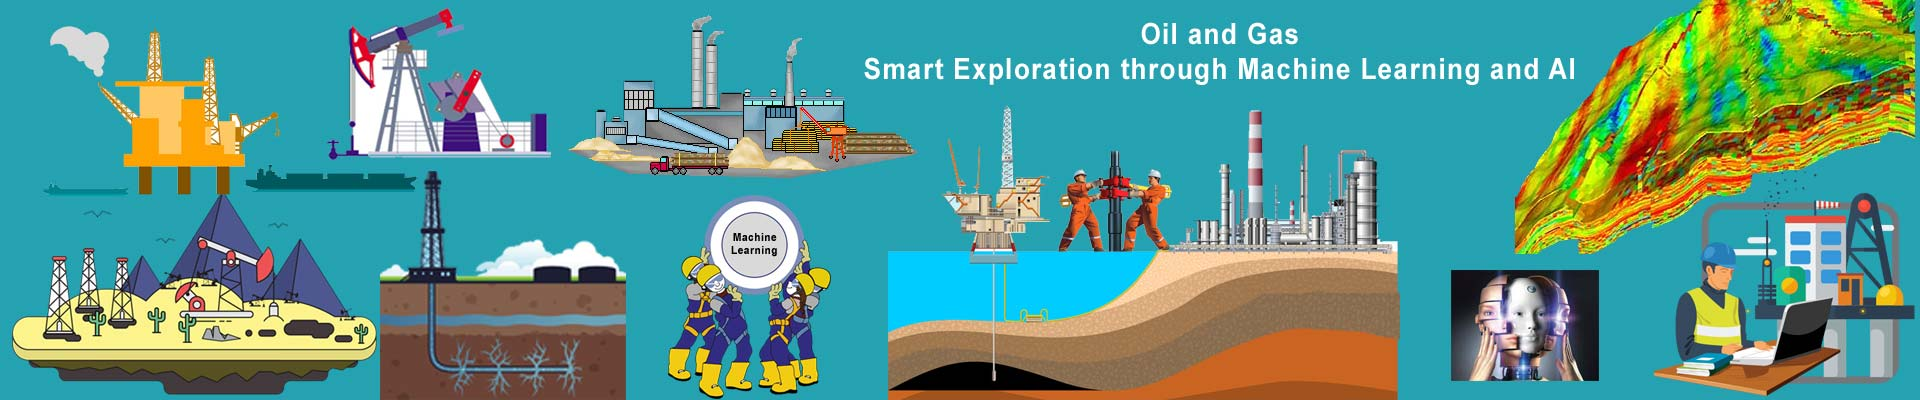 Oil and Gas–Smart Exploration through Machine Learning and AI